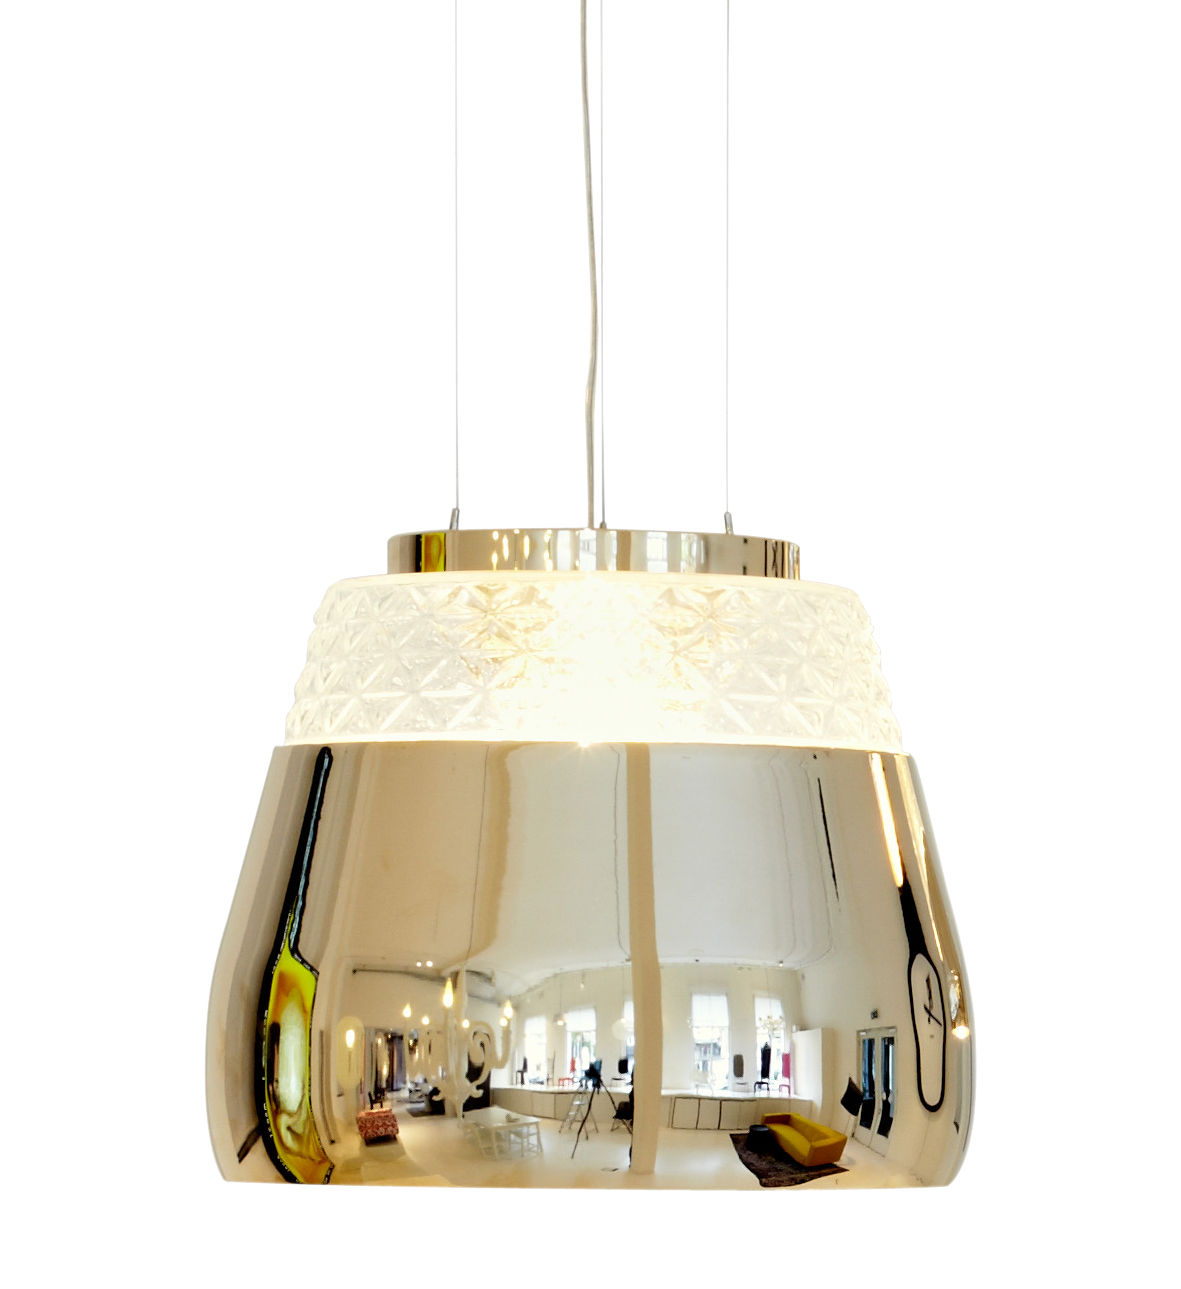 Lighting - Pendant Lighting - Valentine Baby Pendant - Ø 21 cm by Moooi - Gold / Gold inside - Blown glass, Lacquered metal